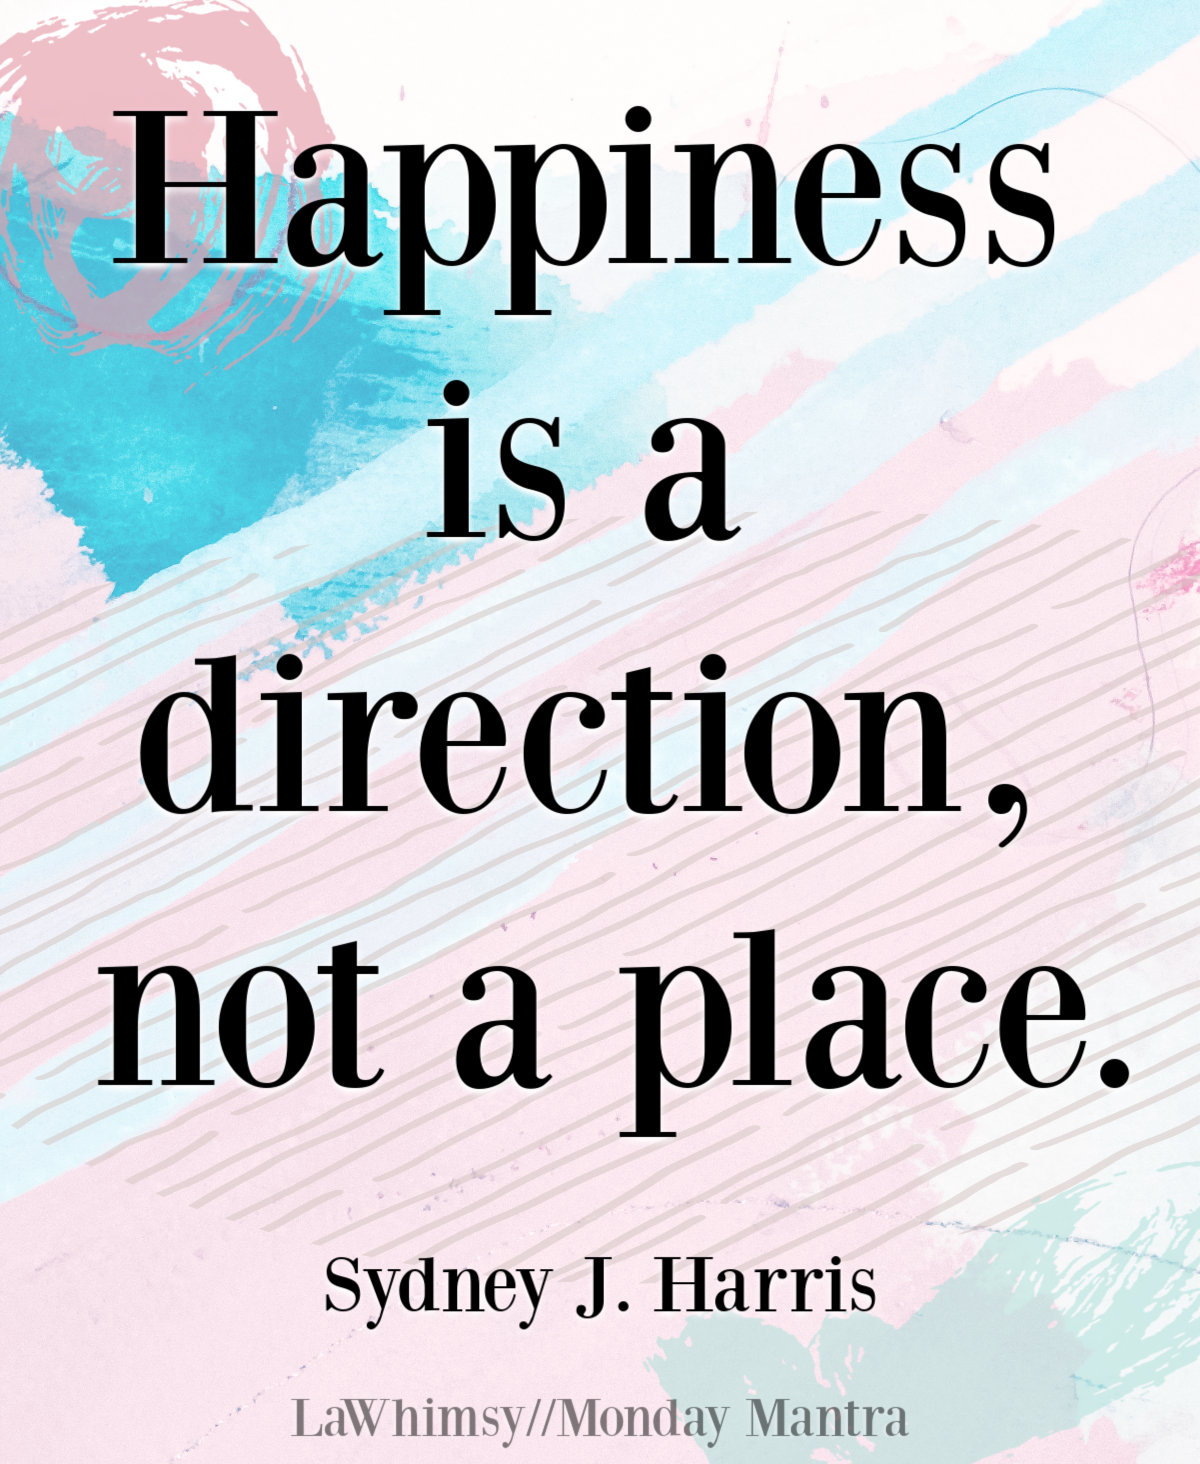 Happiness is a direction, not a place Sydney J Harris quote Monday Mantra 284 via LaWhimsy